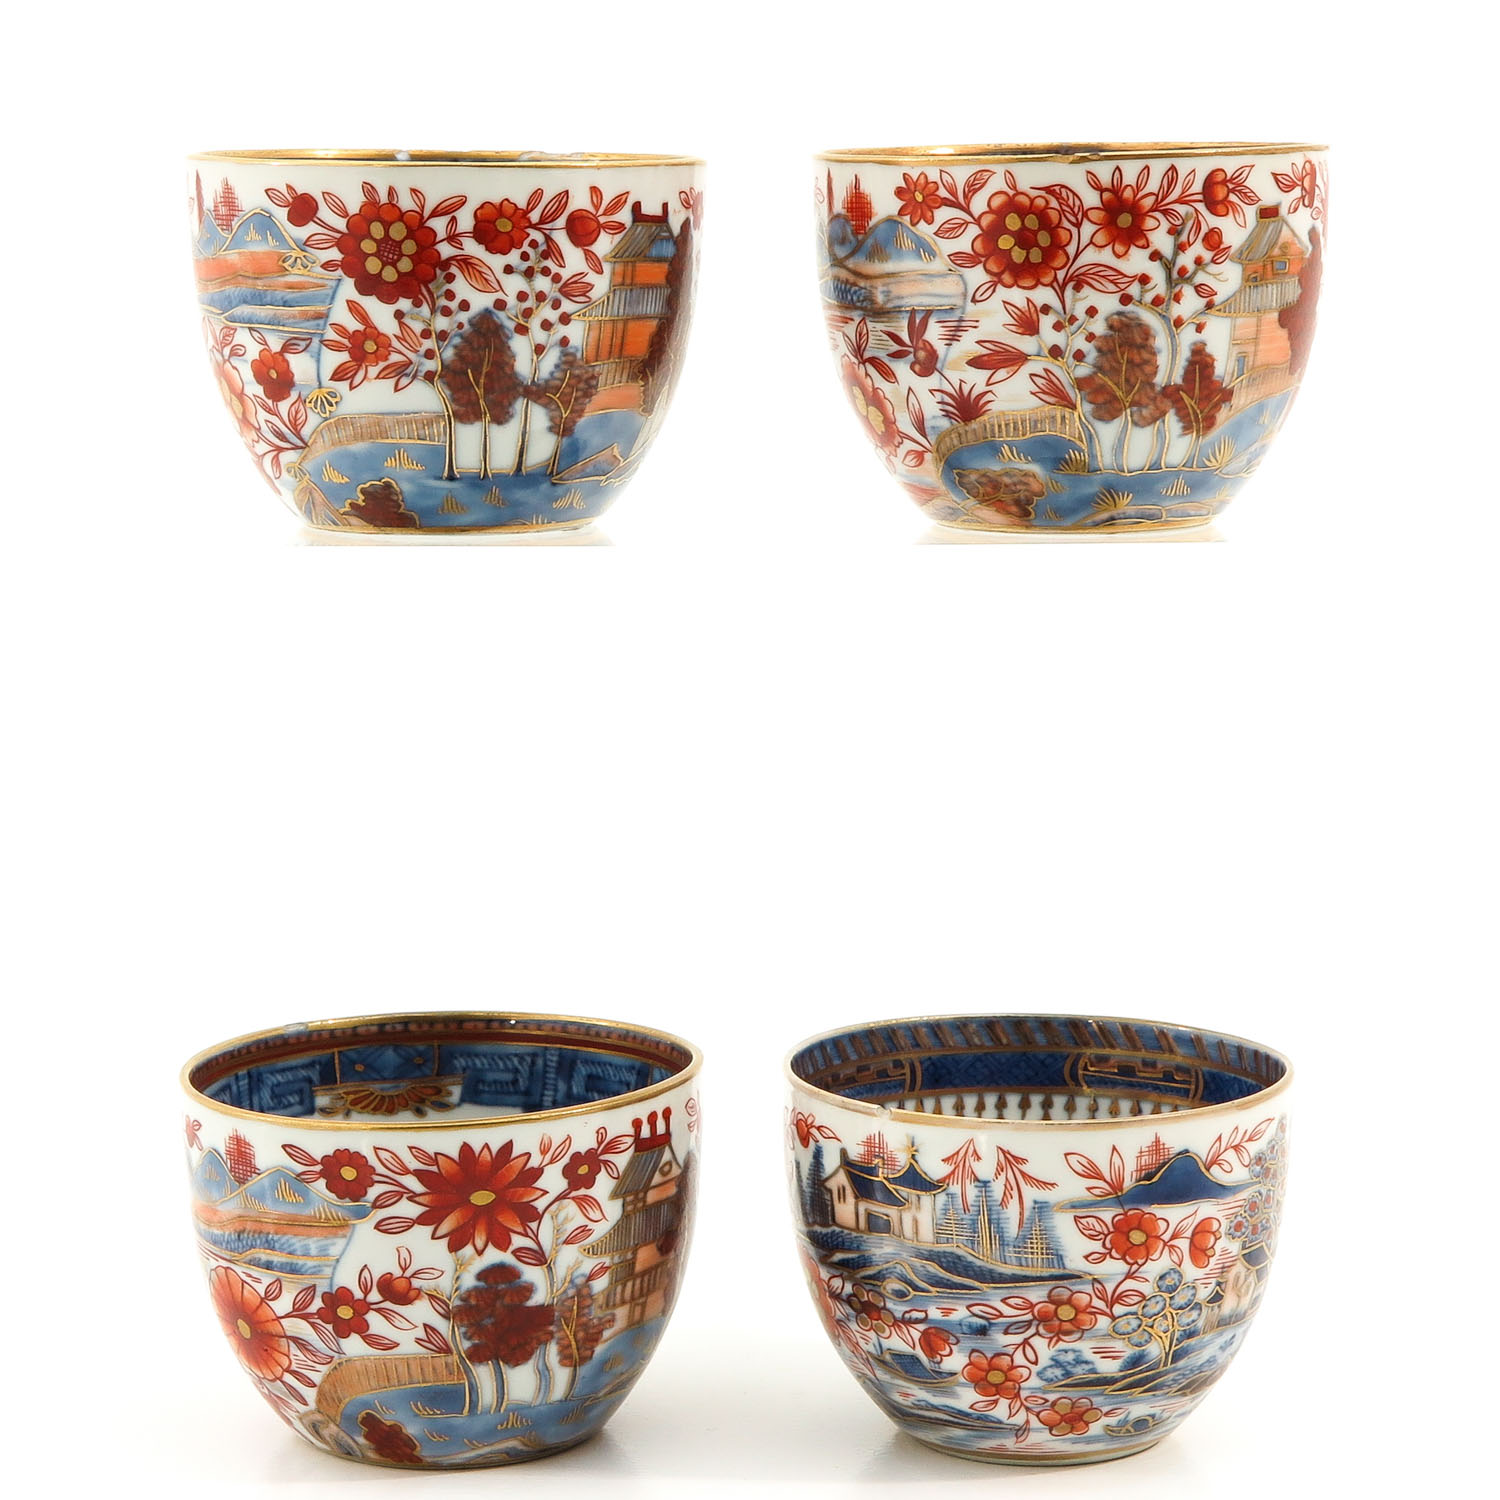 4 Imari Cups and Saucers - Image 4 of 10